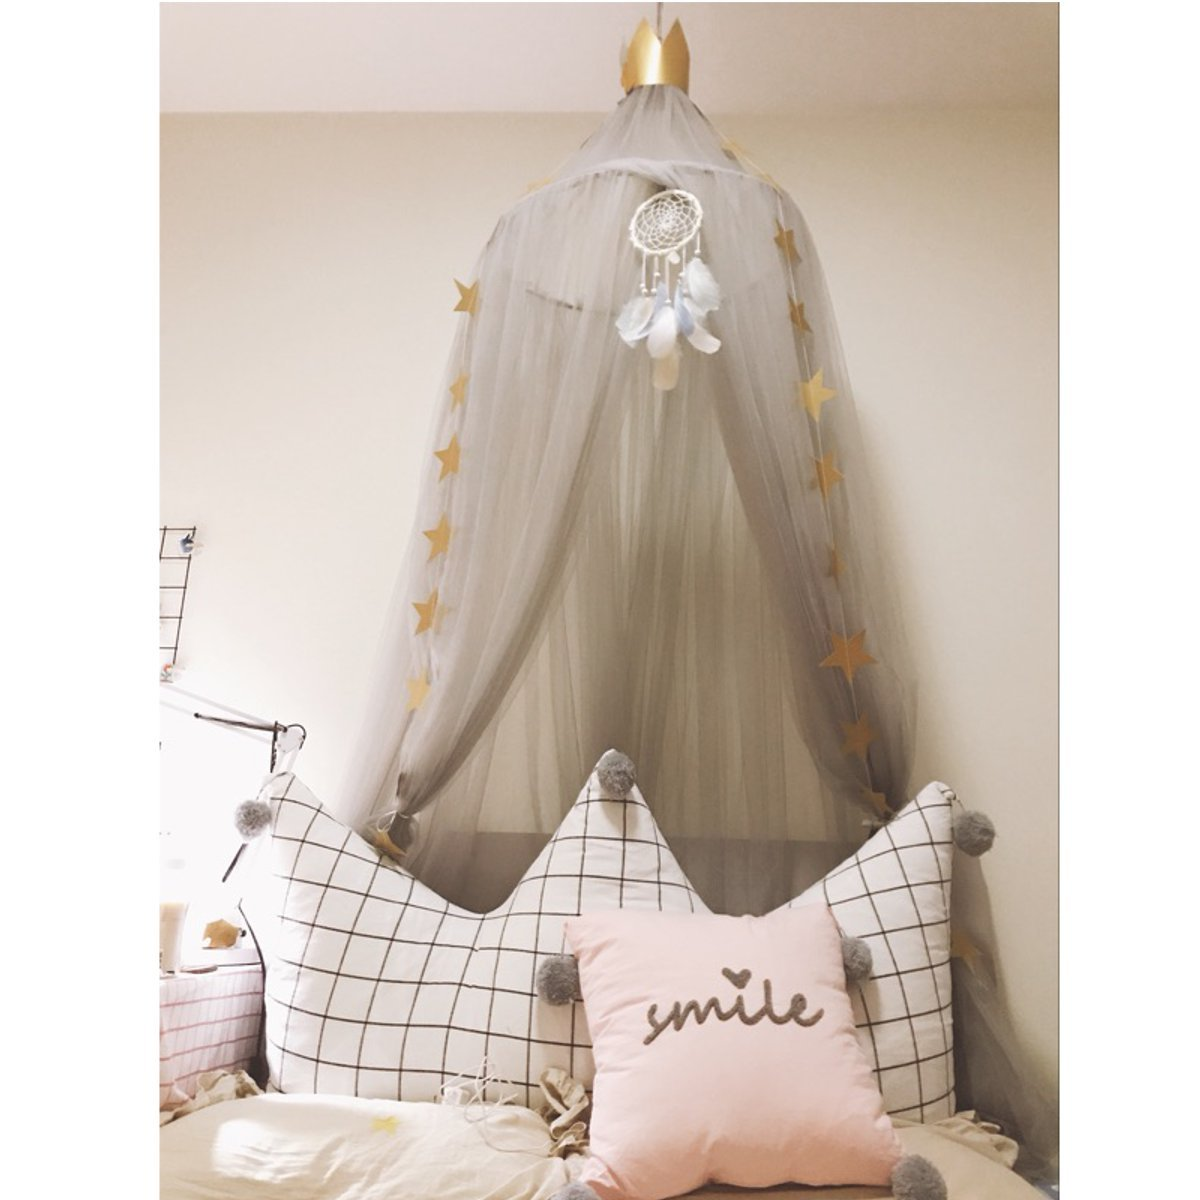 Jeteven Polyester Dome Princess Bed Canopy Kids Play Tent Mosquito Net with Crown for Baby Kids Indoor Outdoor Playing Reading Height 240cm/94.5in Grey